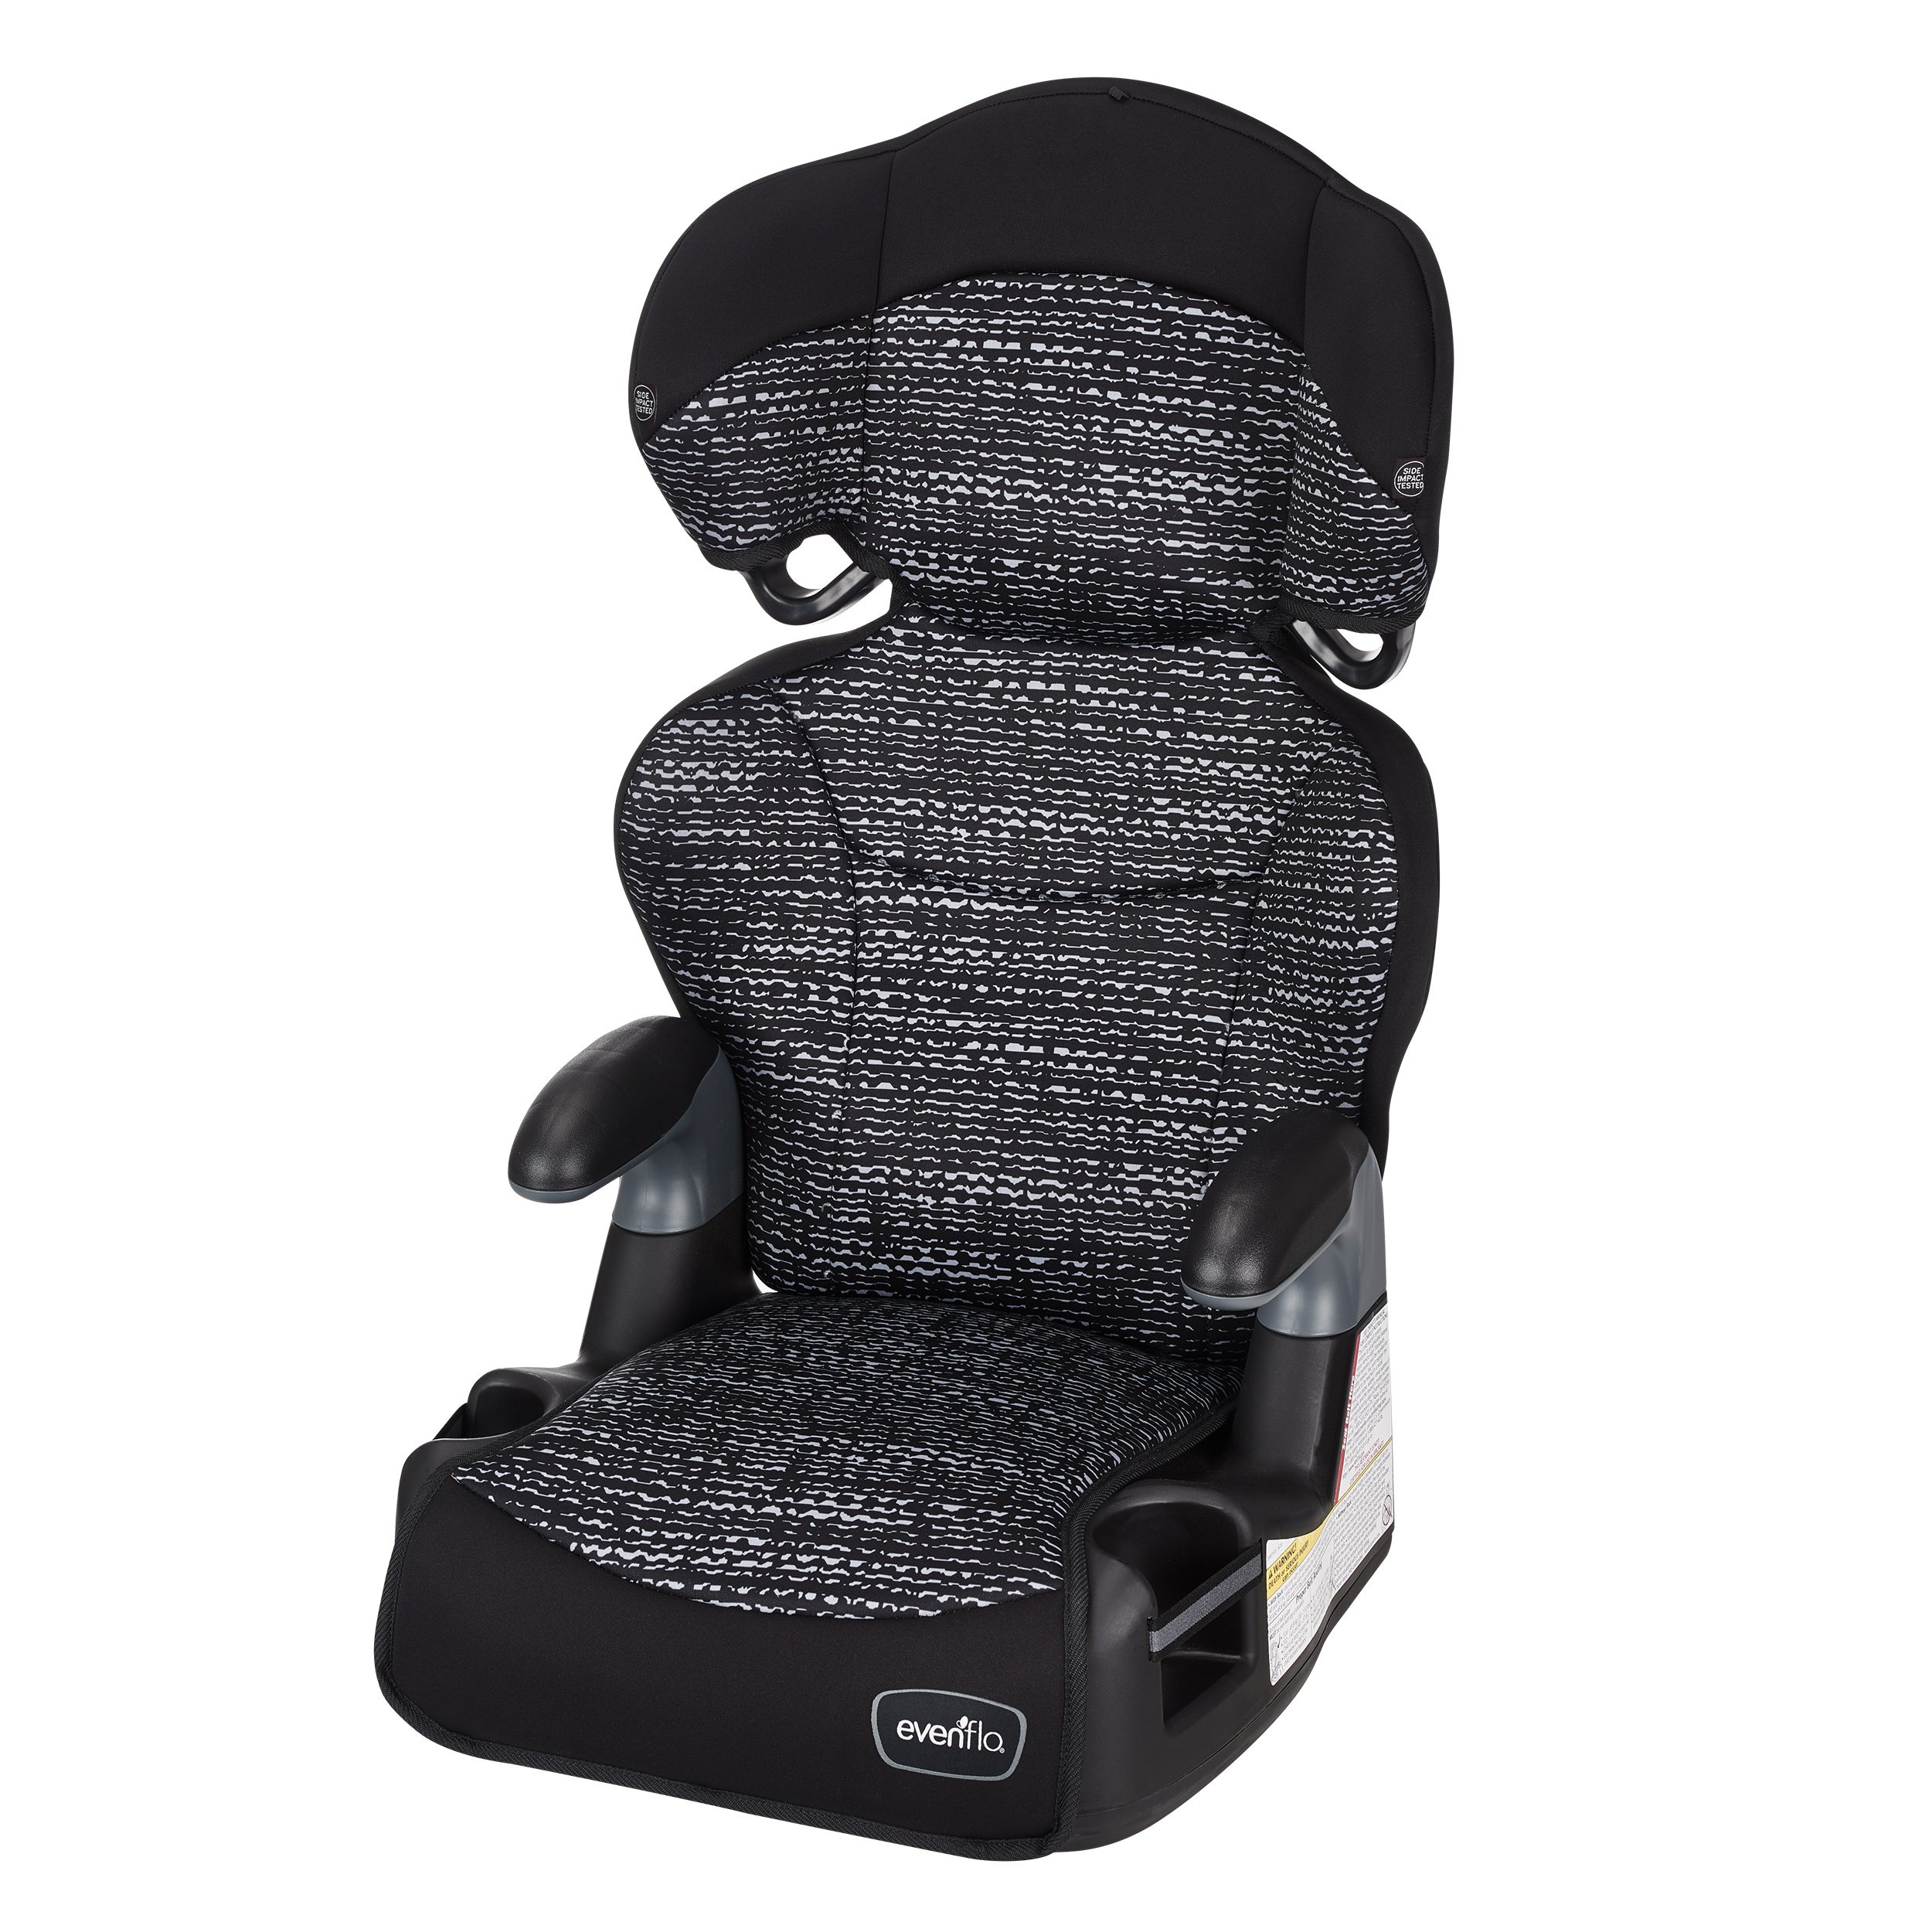 Evenflo Big Kid AMP High Back Booster Car Seat, Static Black by Evenflo